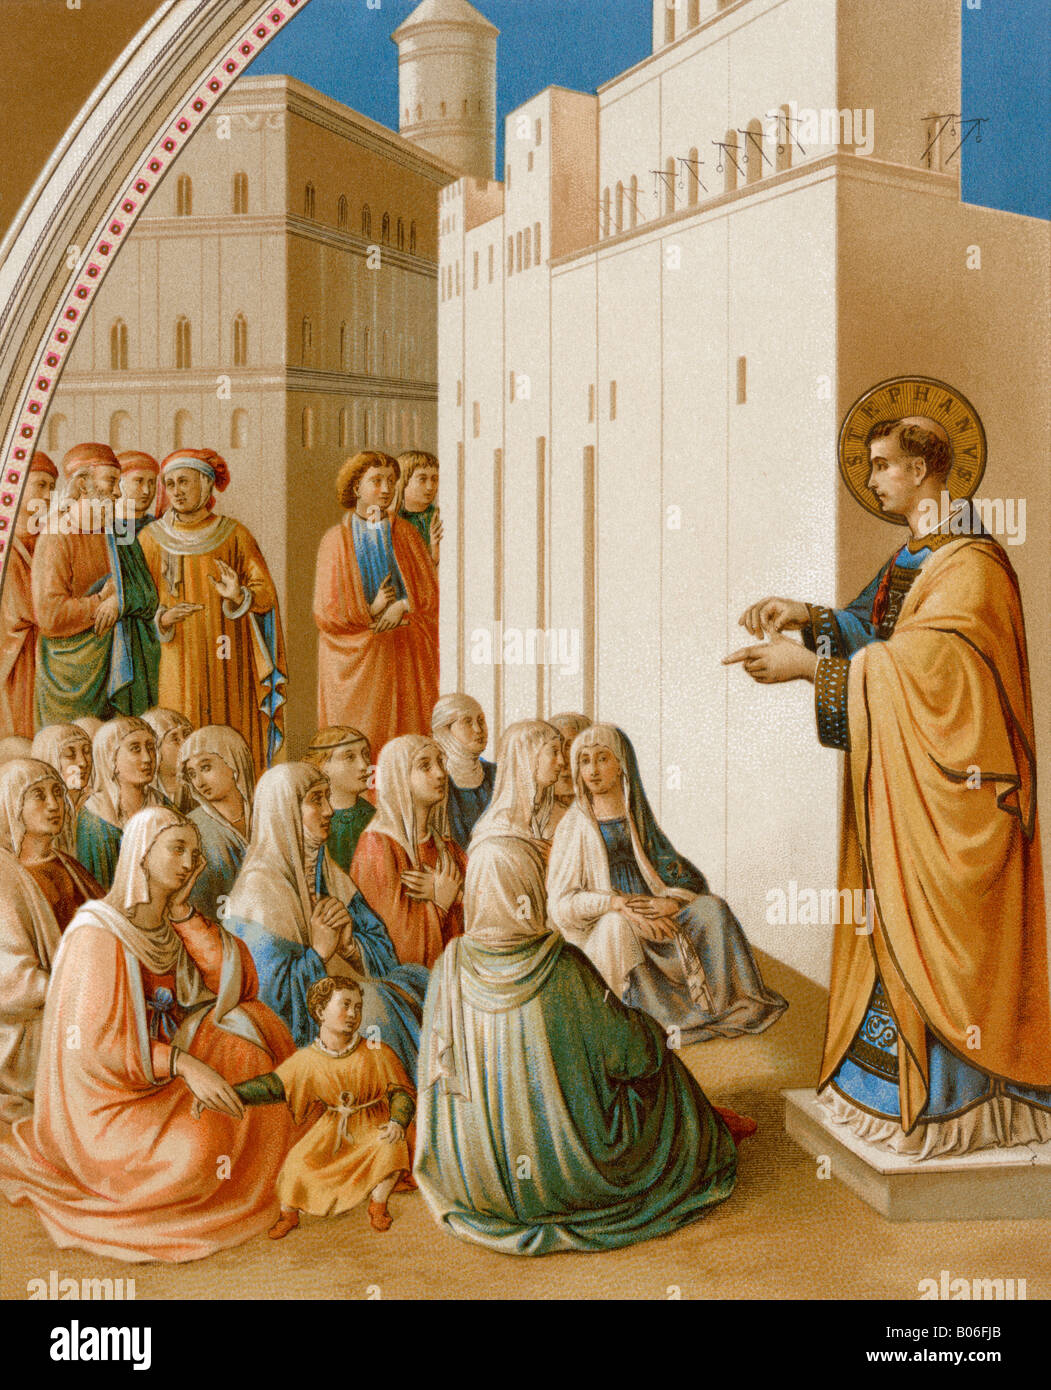 Saint Stephen preaching in Jerusalem. Color lithograph - Stock Image